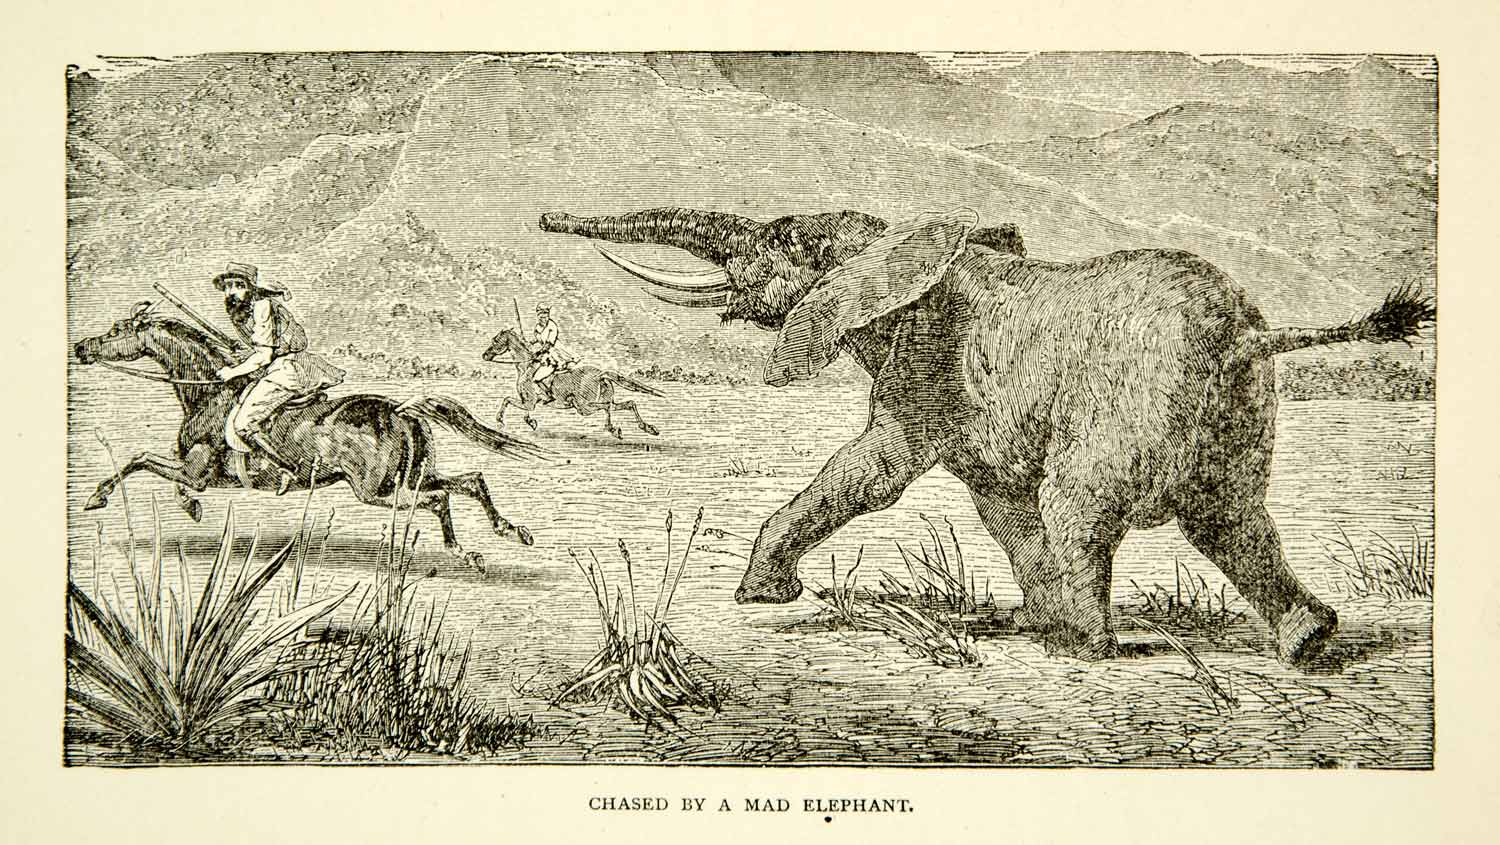 1884 Wood Engraving Samuel Baker Elephant Charge Expedition Africa Horse XGZC7